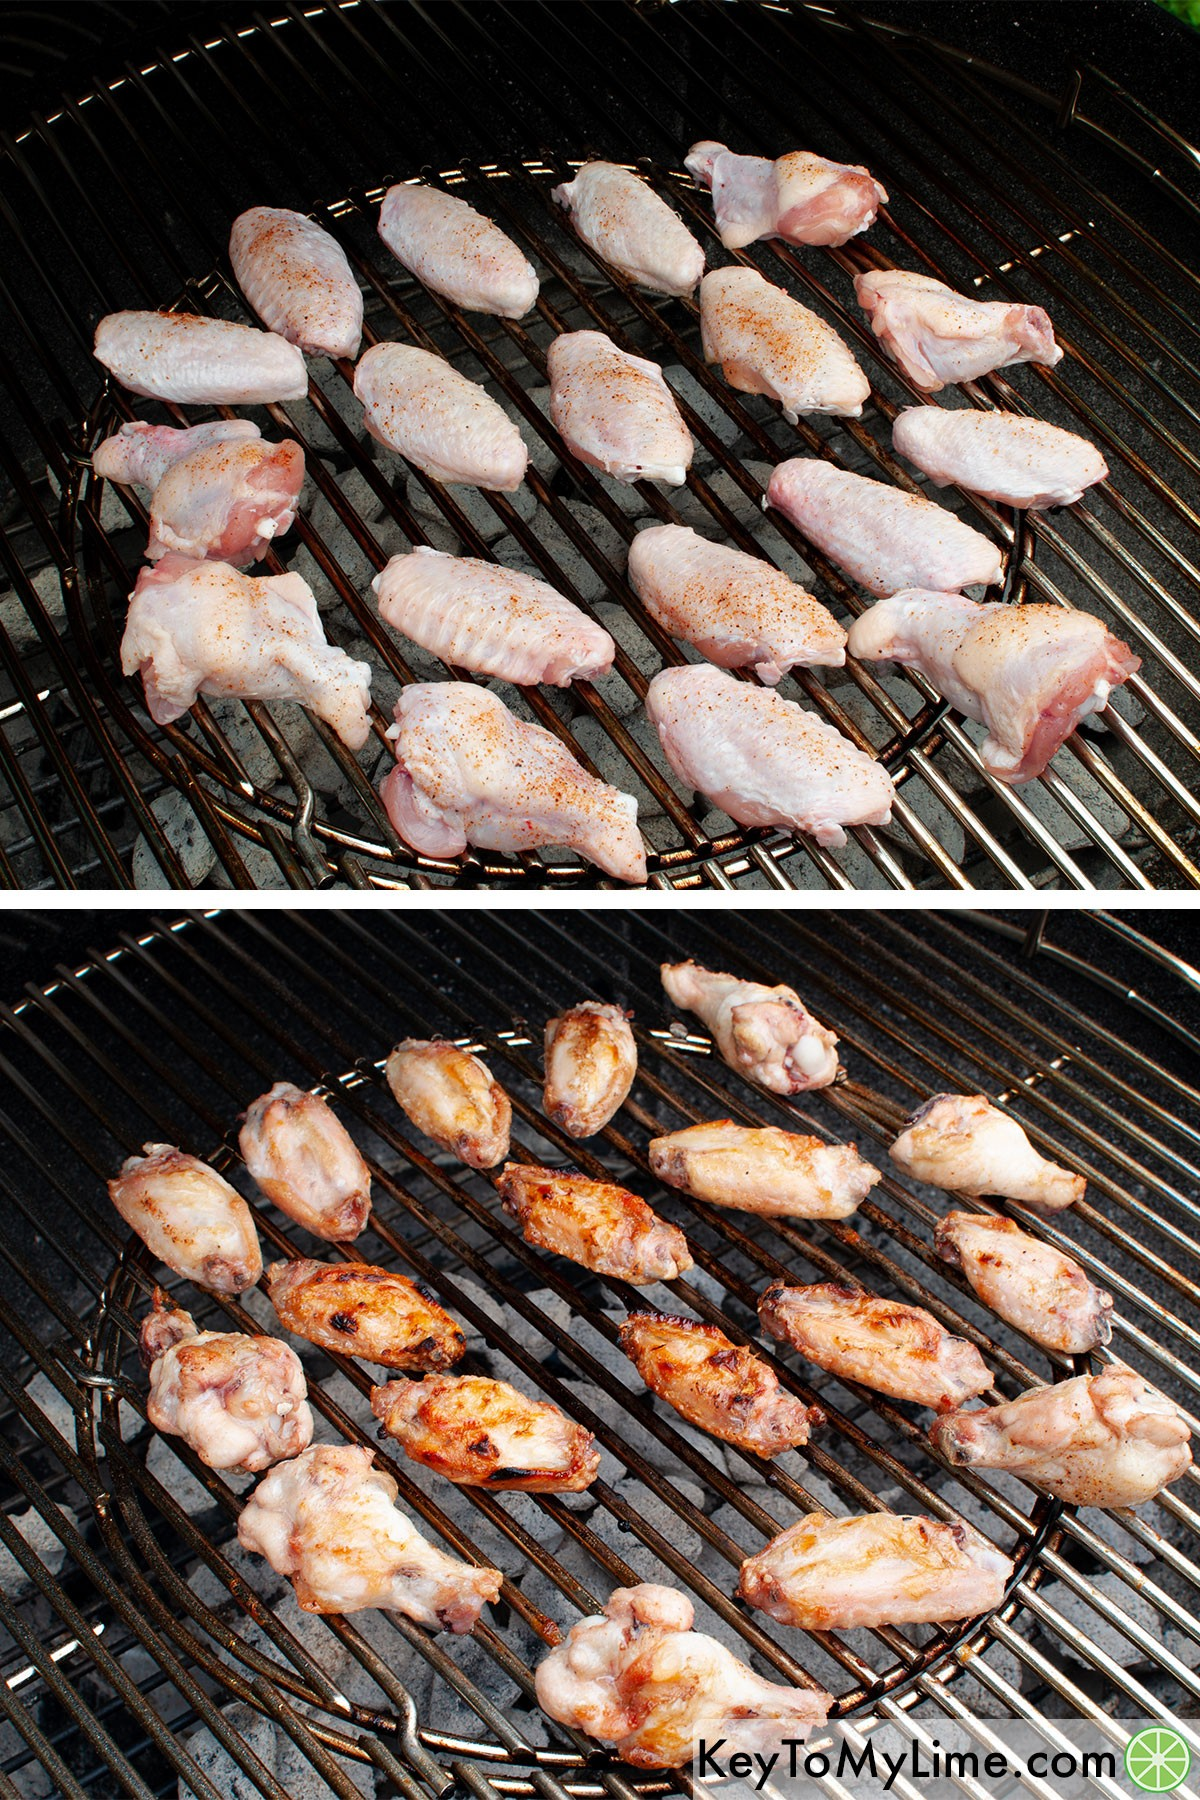 Chicken wings on grill before and after cooking.